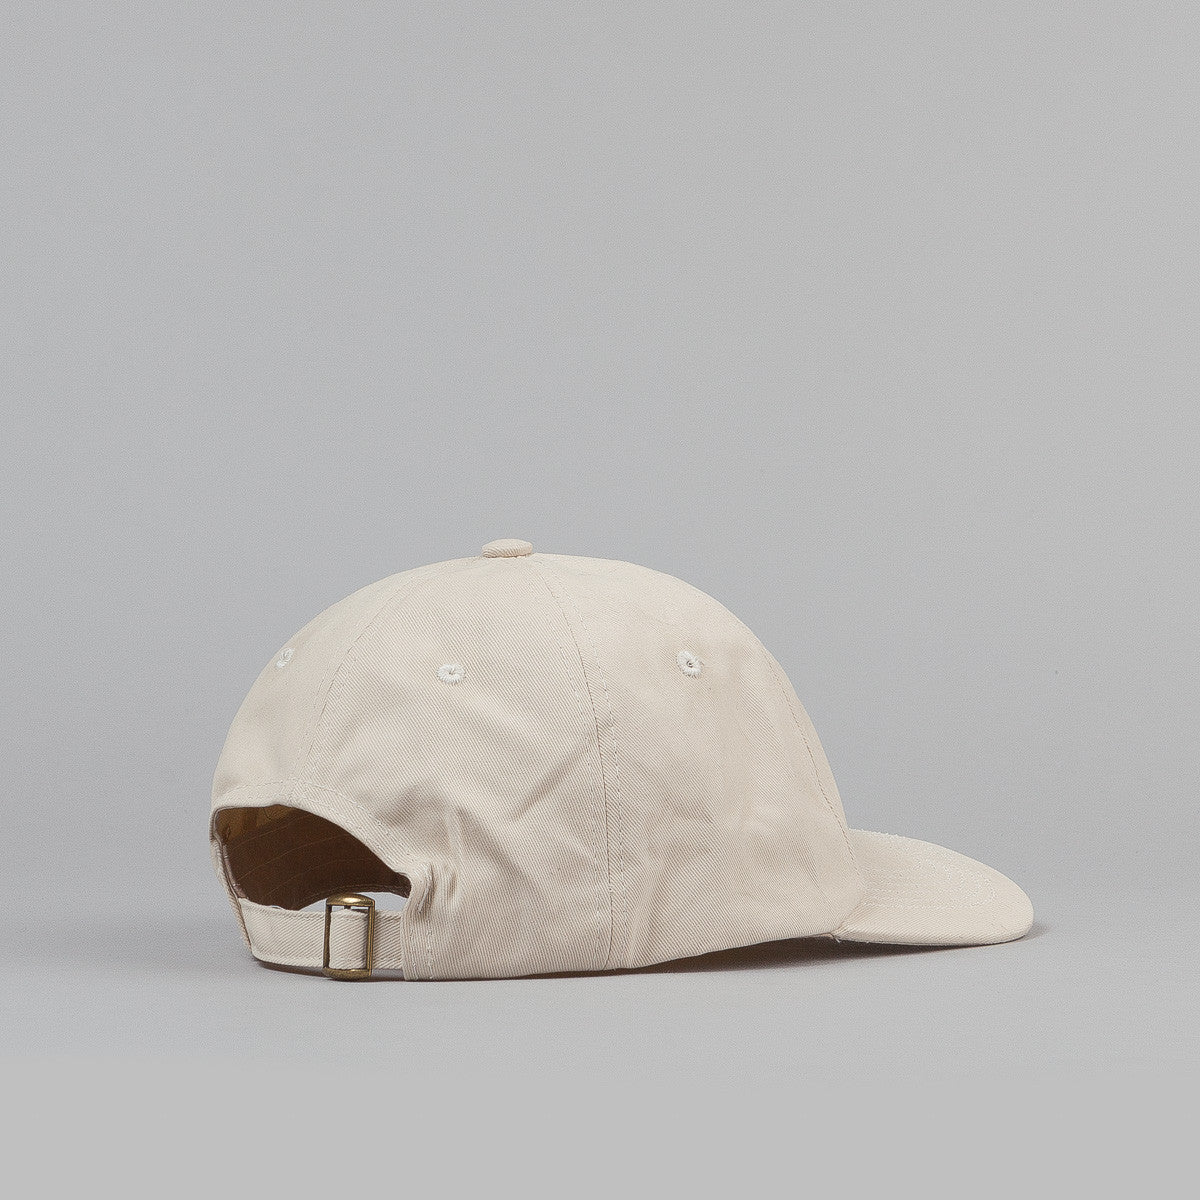 Yardsale Floral 6 Panel Cap - Beige